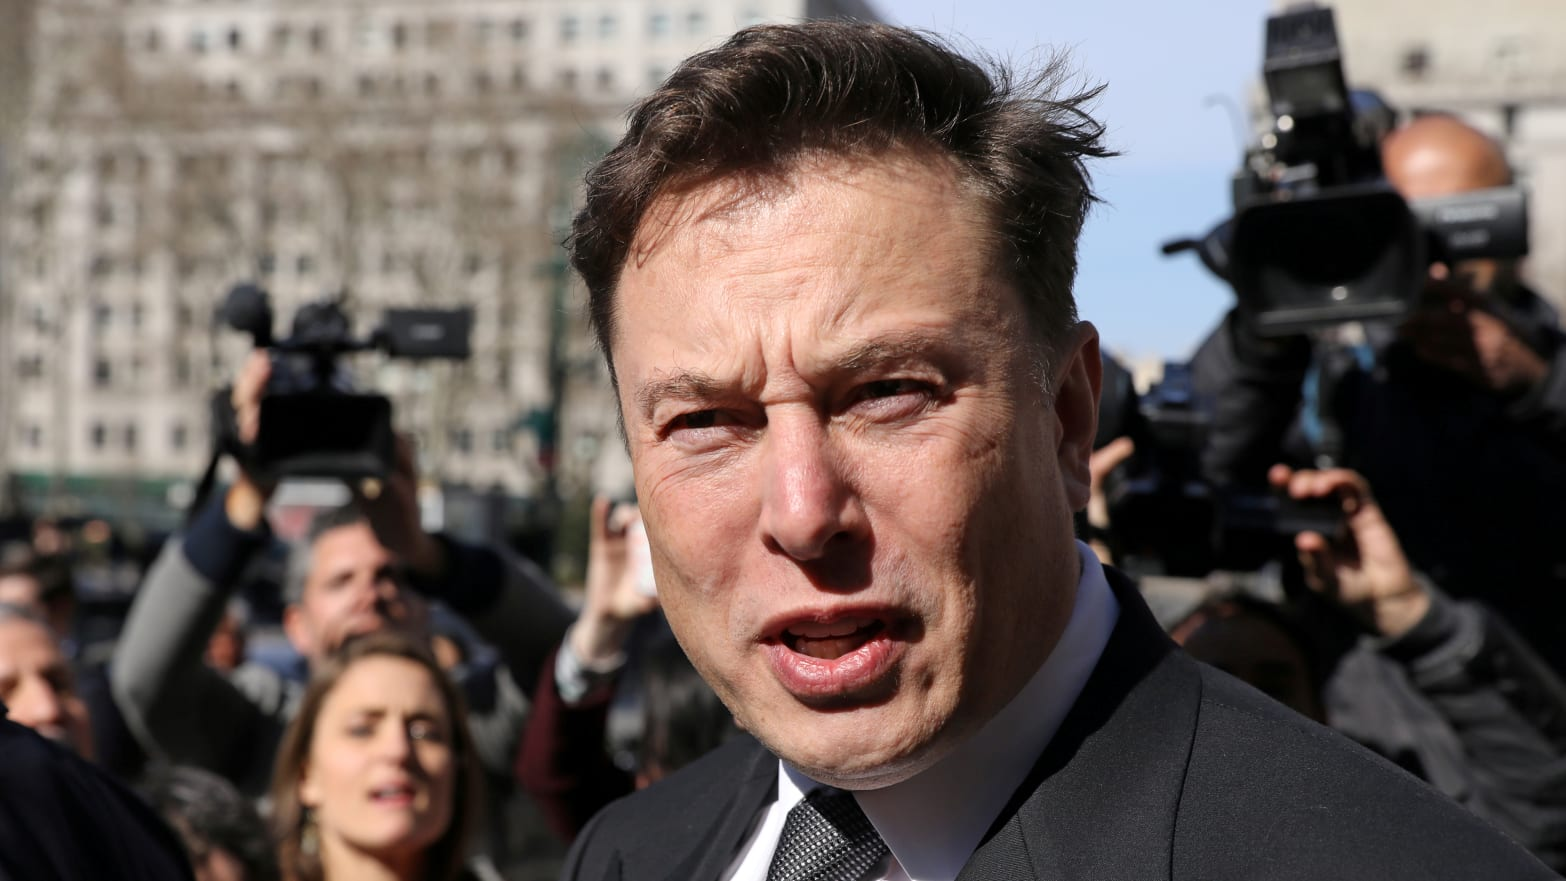 Elon Musk to Cave Diver Vernon Unsworth in 'Pedo Guy' Suit: You Started It!